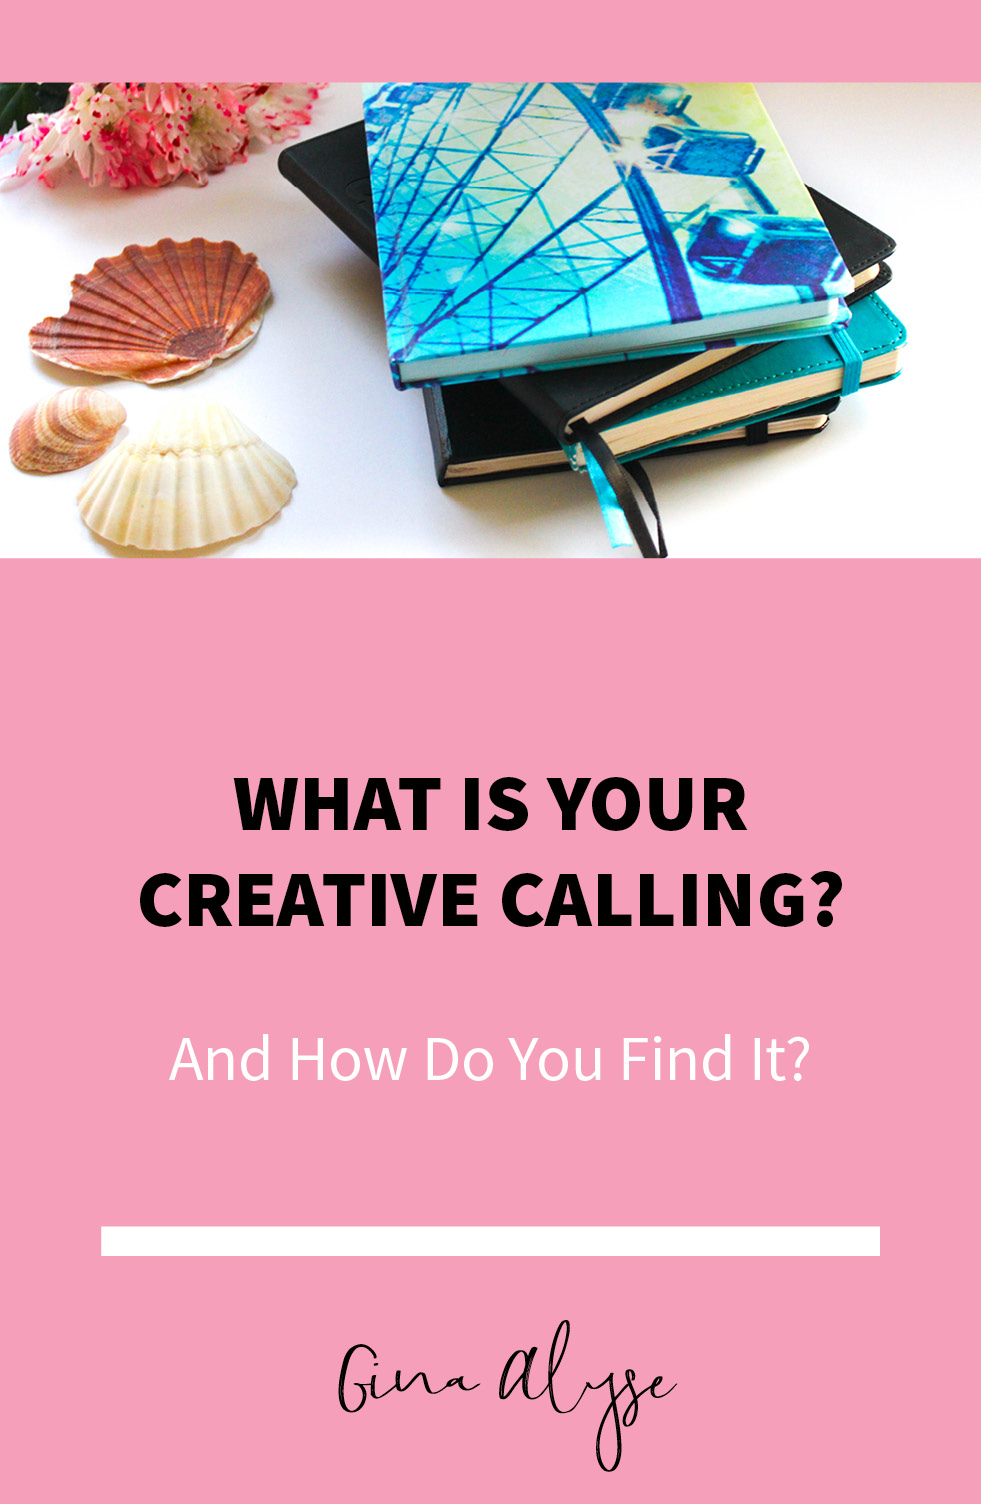 What is your creative calling? How do you find it?